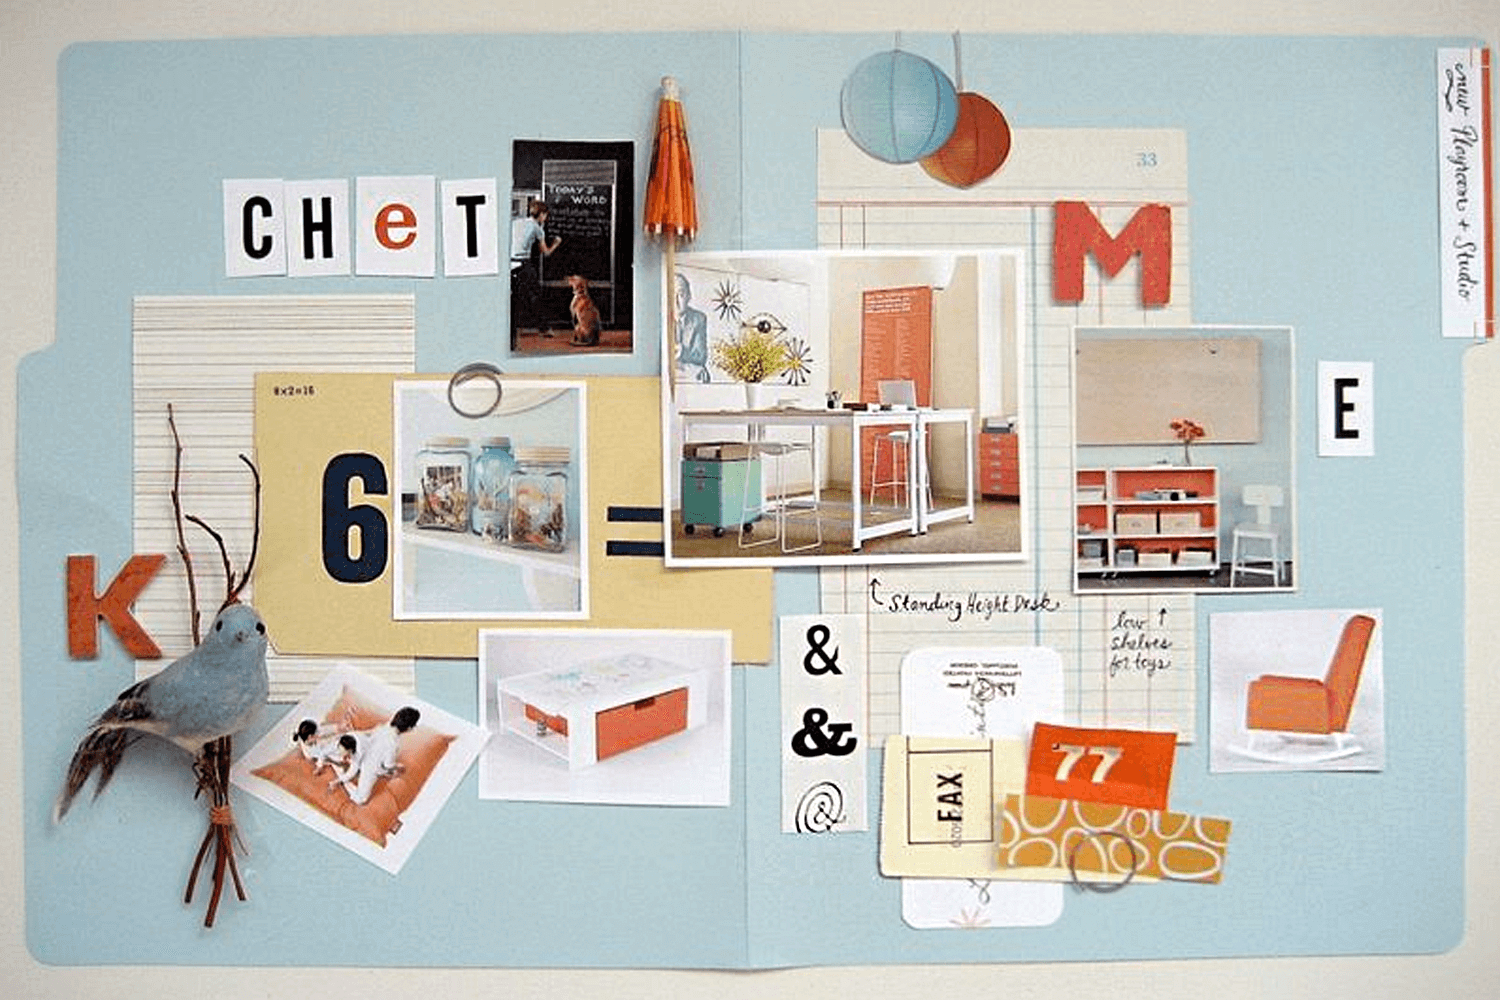 Physical mood board example